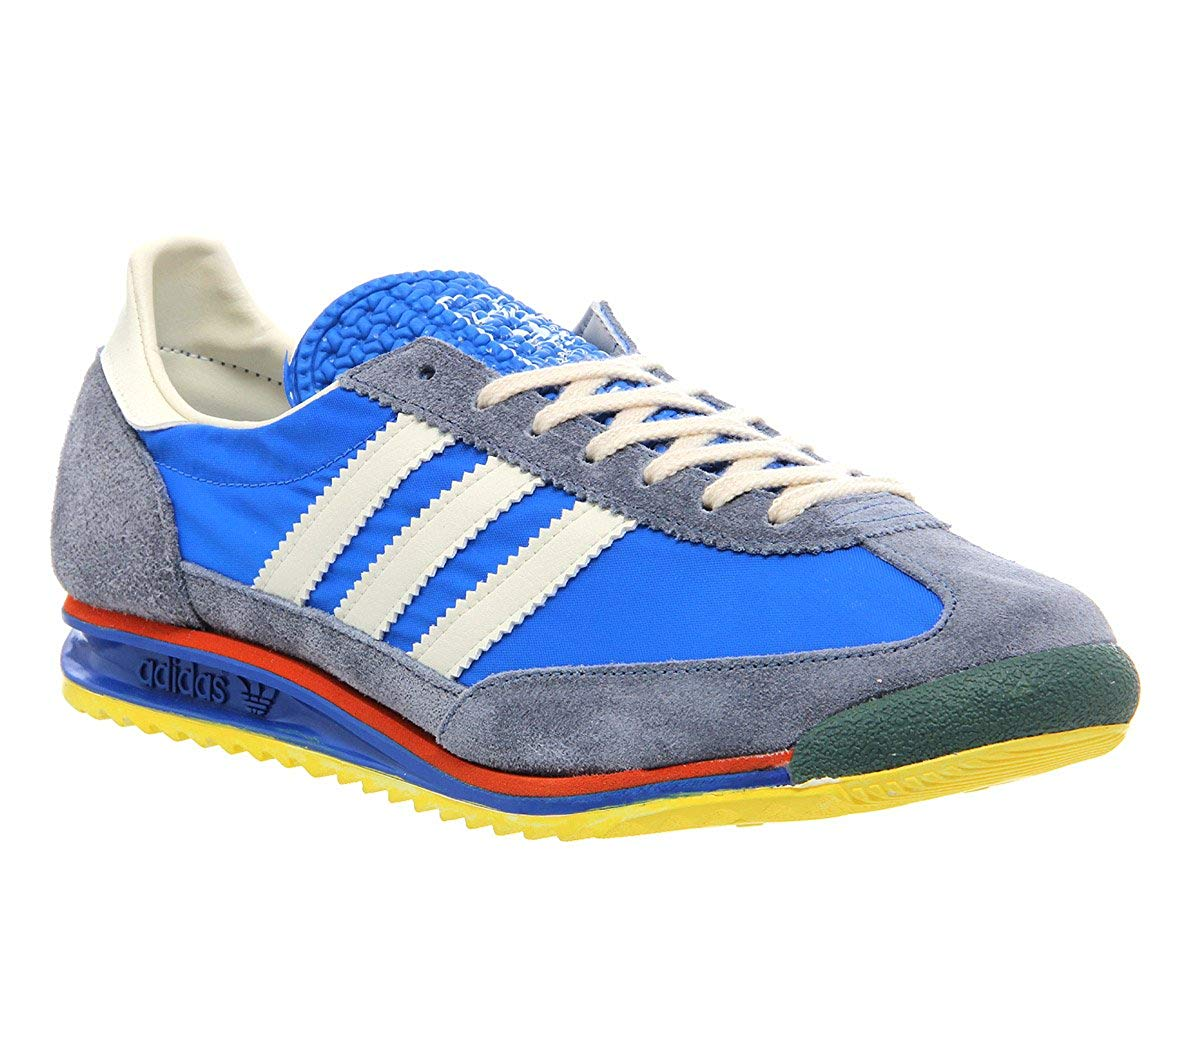 adidas SL 72 Vintage 909463, Baskets Mode Homme Taille 47